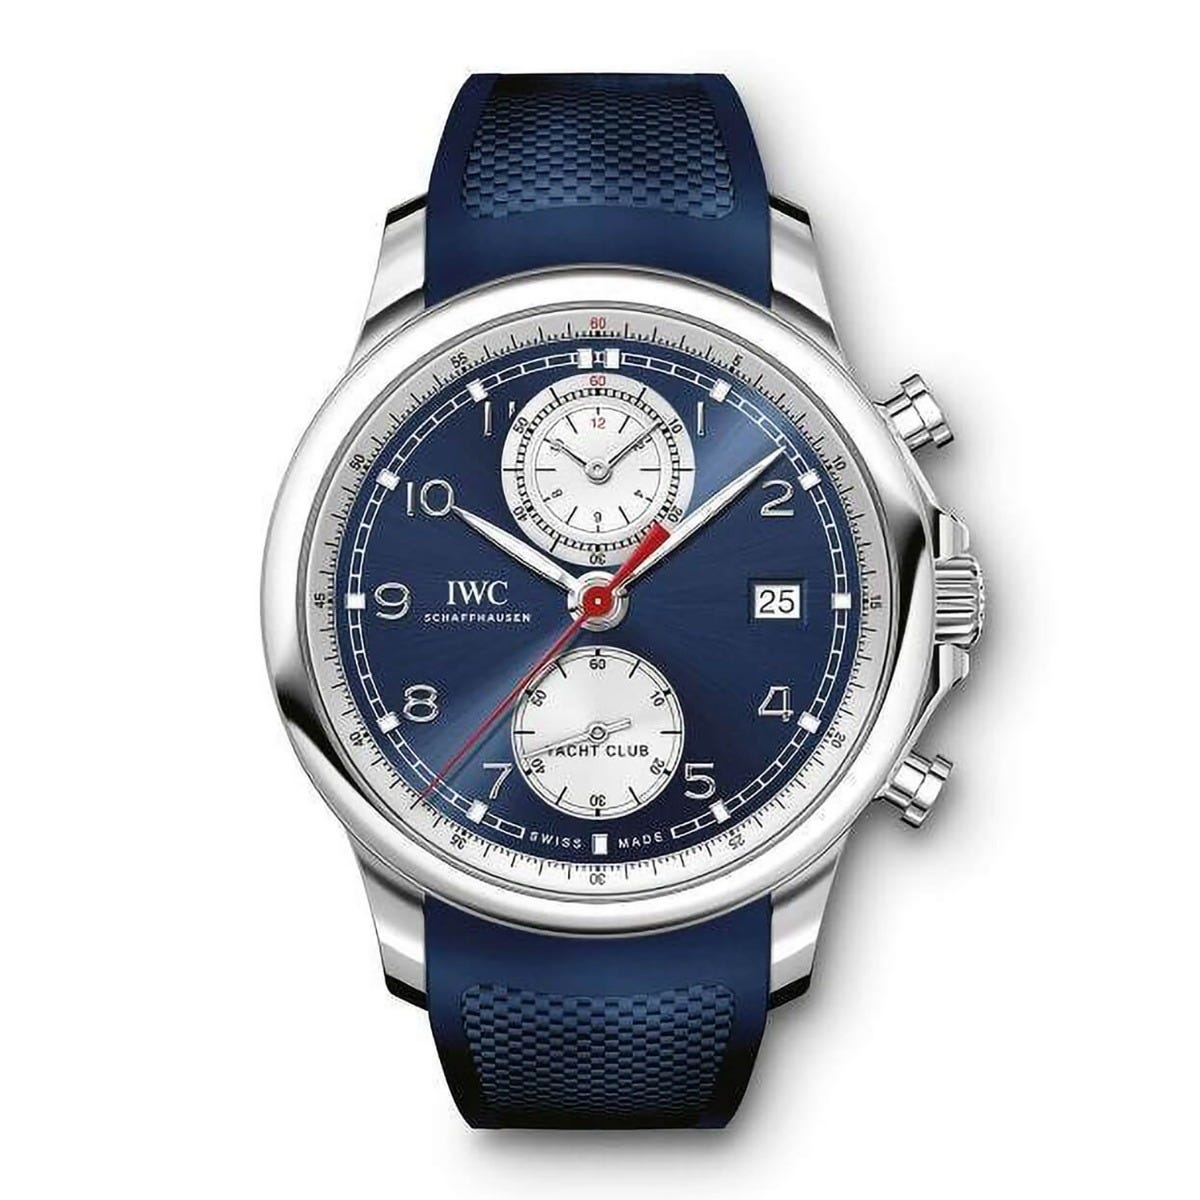 IWC Portugieser Yacht Club Chronograph Blue Rubber Men's Watch